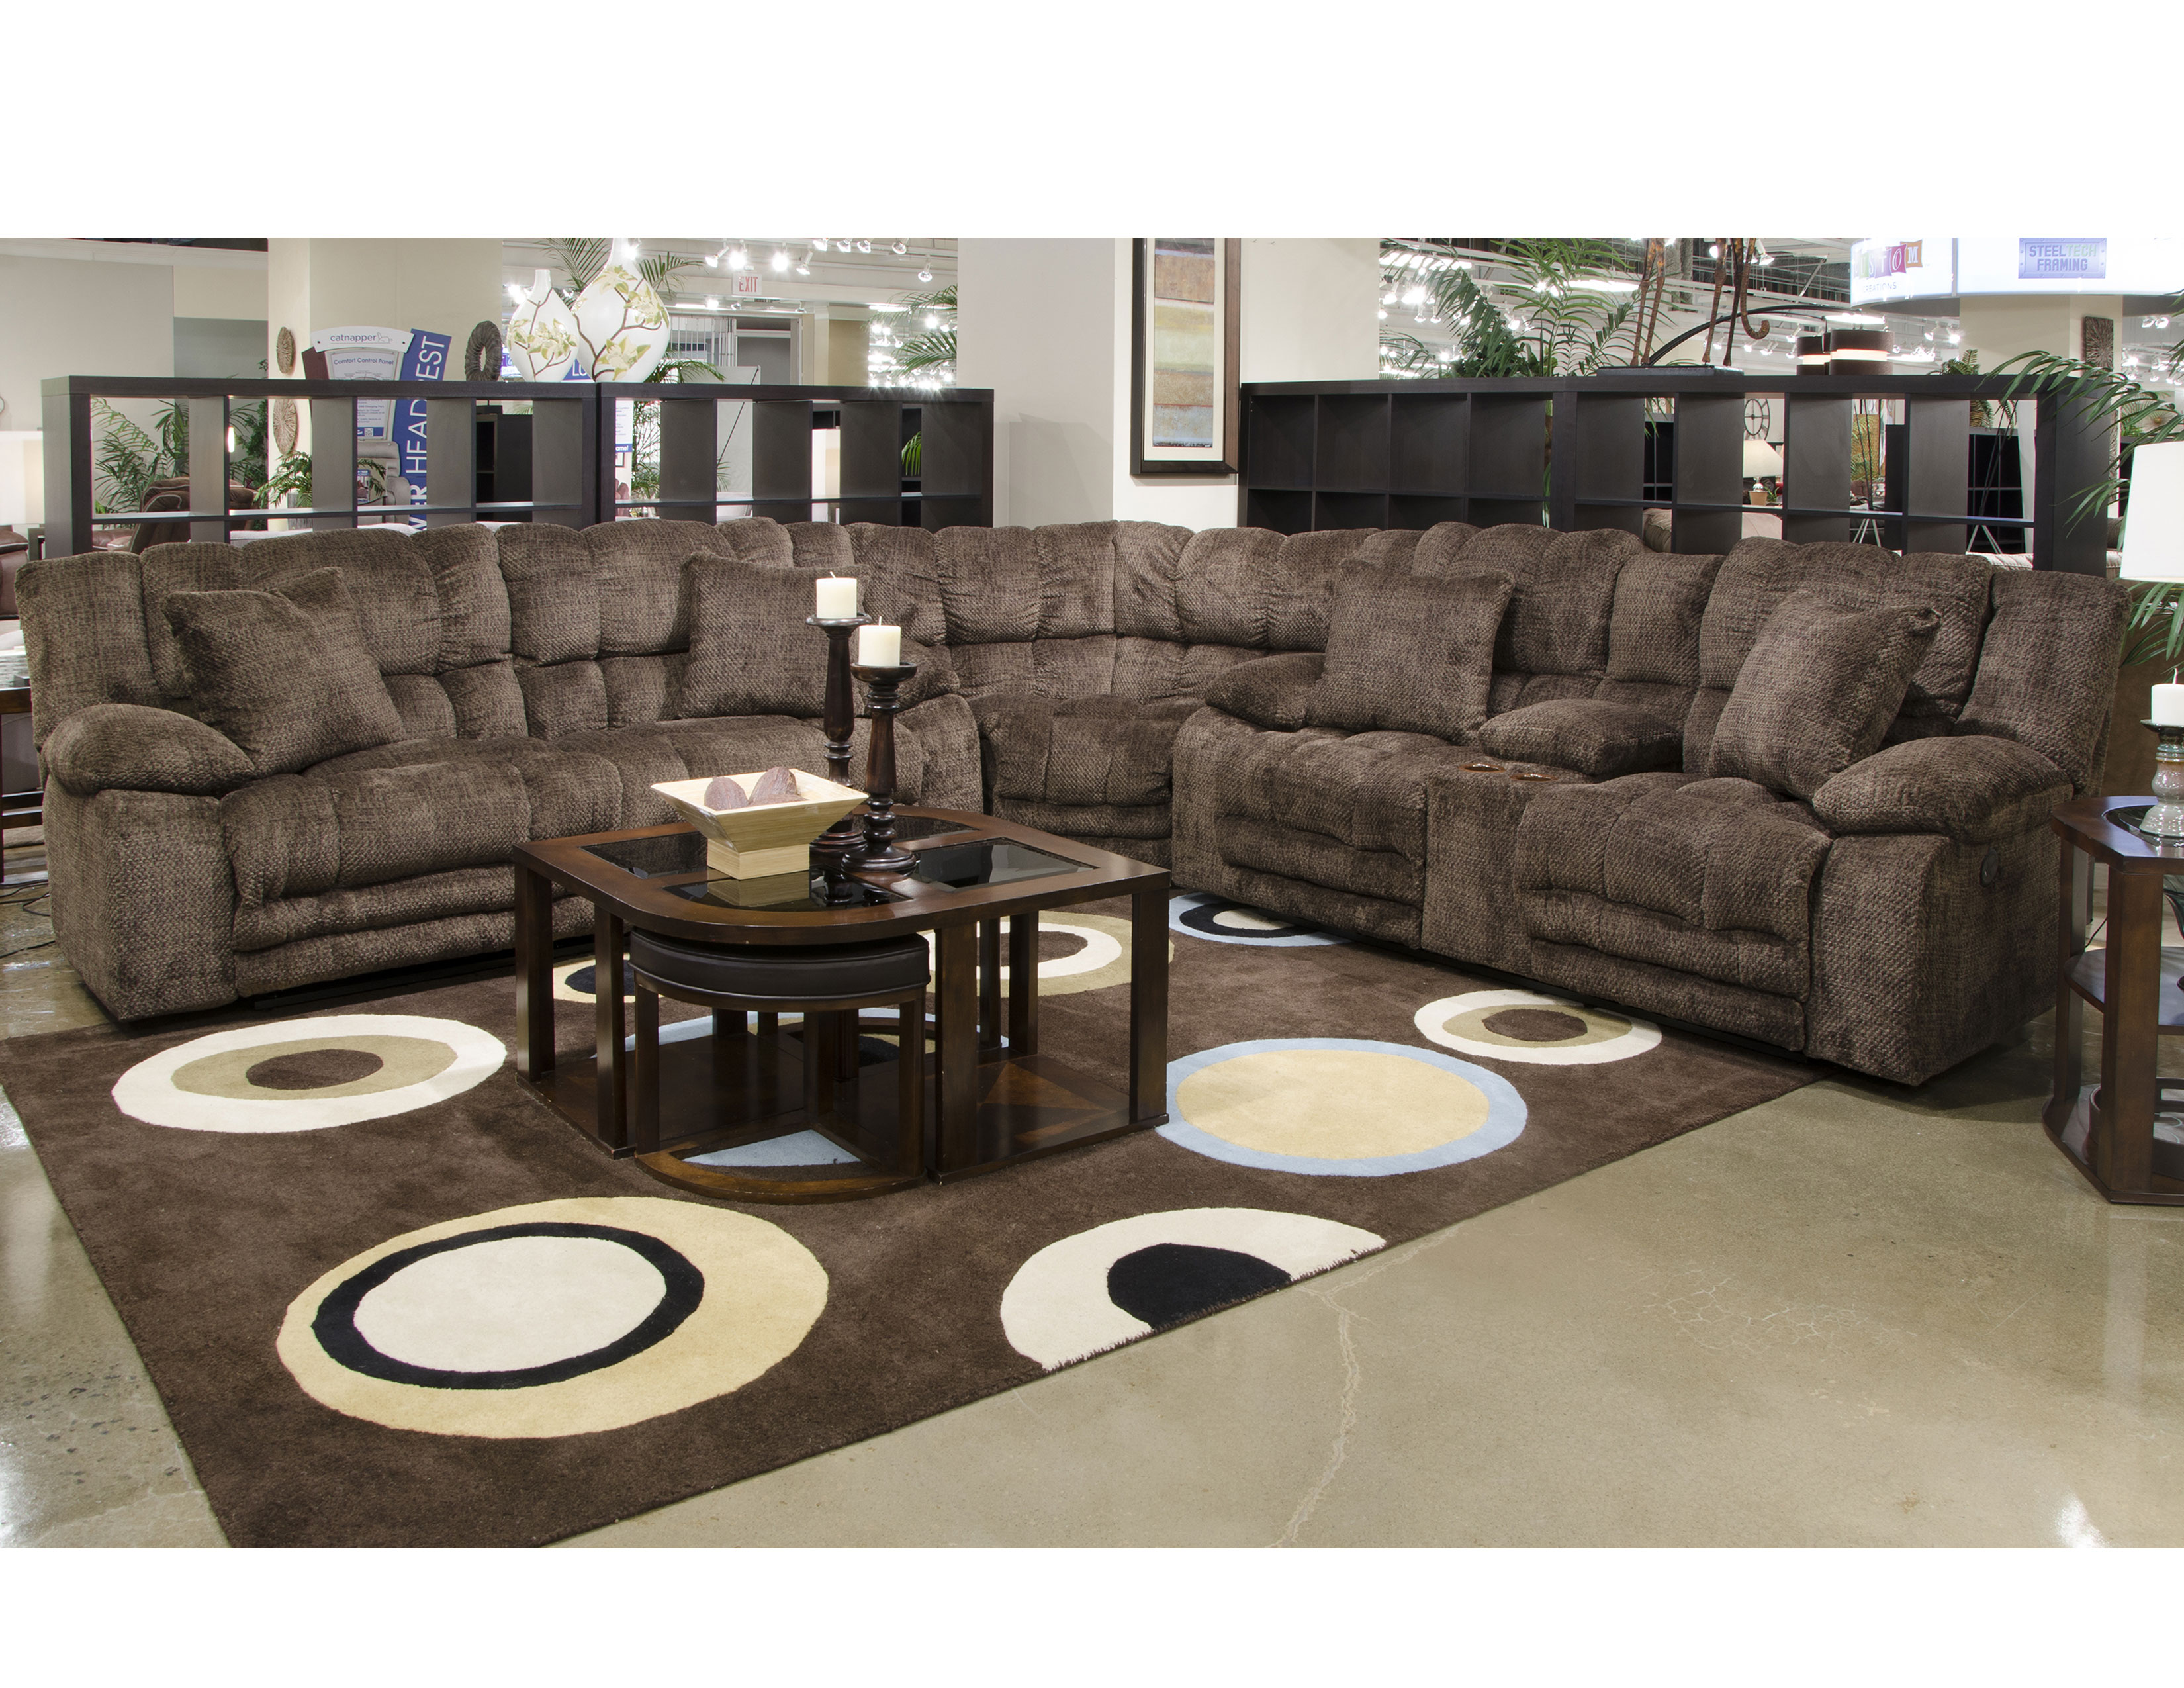 Peachy Branson 3 Piece Layflat Reclining Sectional W Sofas And Onthecornerstone Fun Painted Chair Ideas Images Onthecornerstoneorg